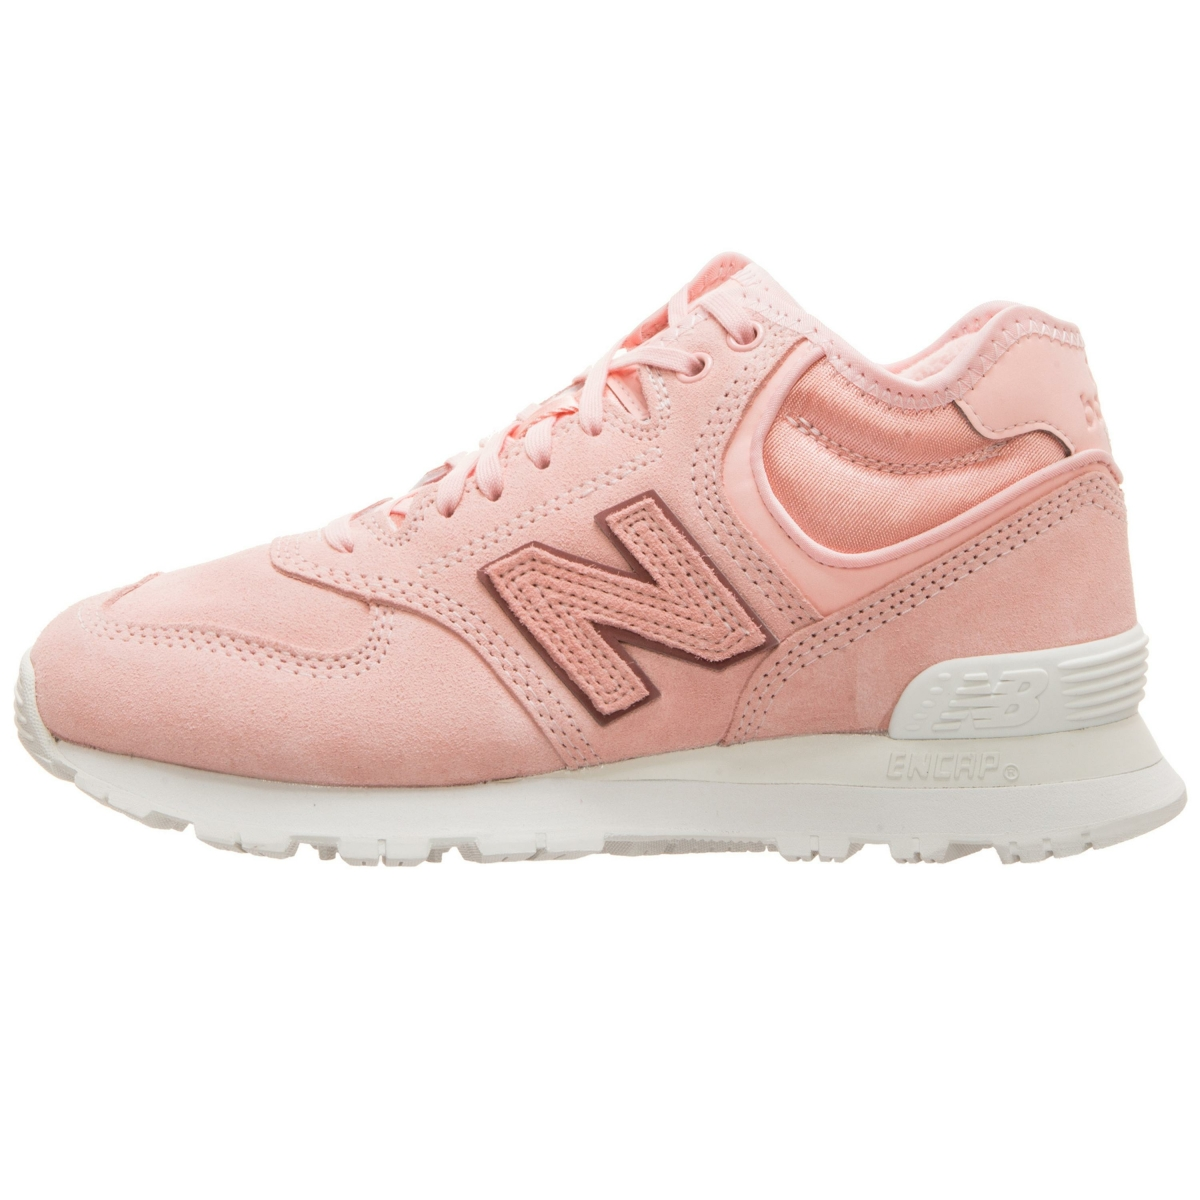 New Balance WH 574 B BA in pink 678011 50 13   everysize